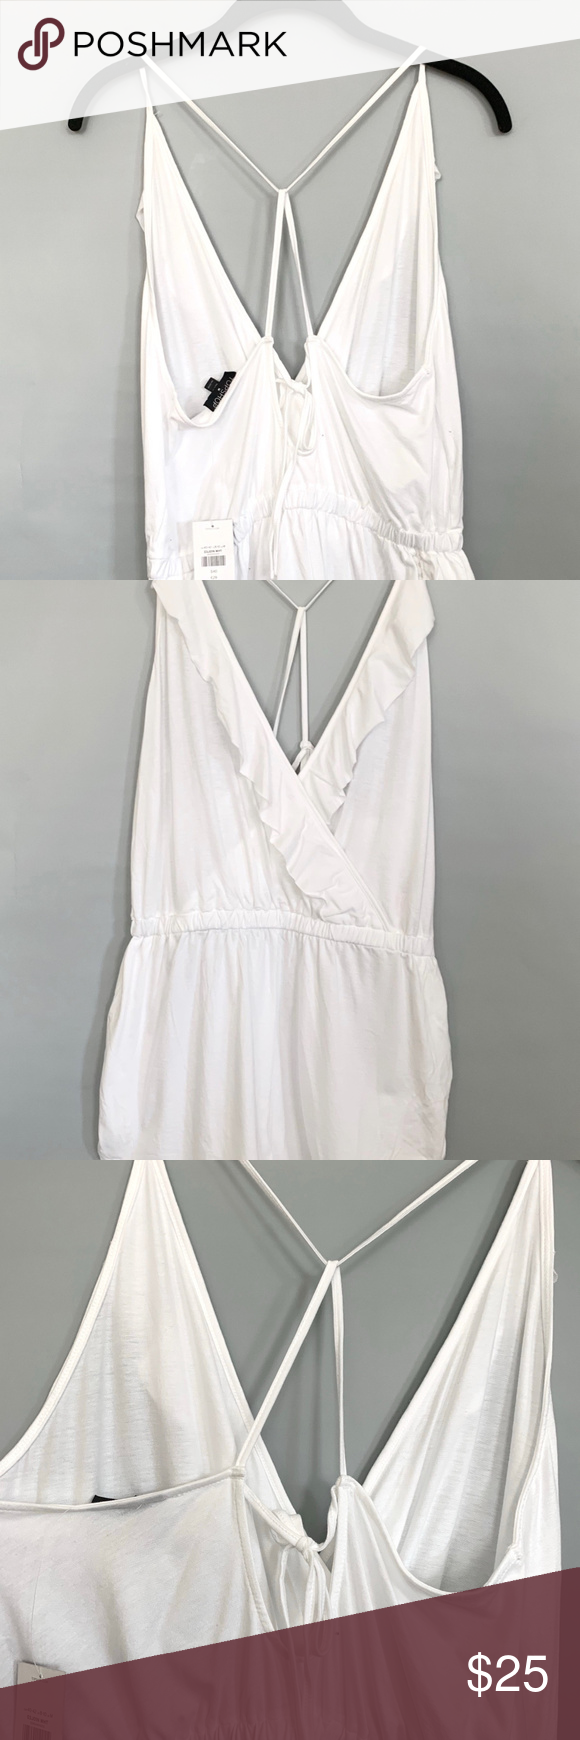 211744b6d1ef Topshop Jersey Wrap Cover up romper size 8 10 NWT New With Tag A  one-and-done post-beach outfit is made of soft